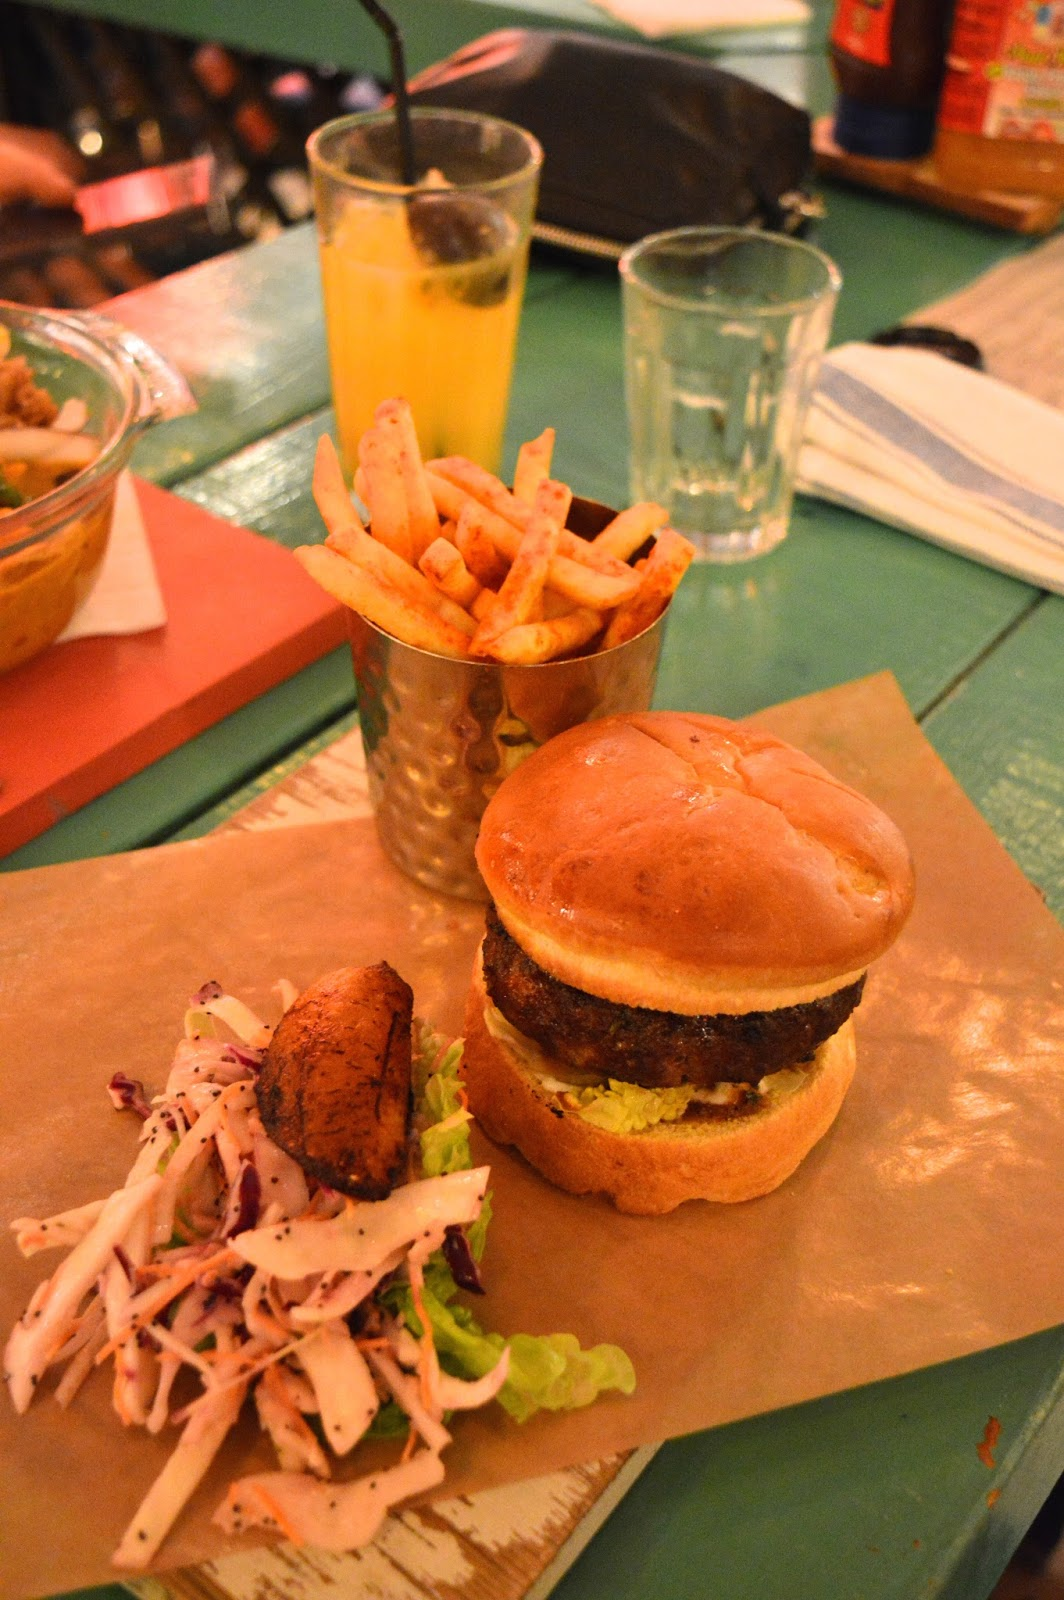 Turtle Bay Southampton review, food bloggers, UK food bloggers, Hampshire bloggers, places to eat Southampton, Caribbean food